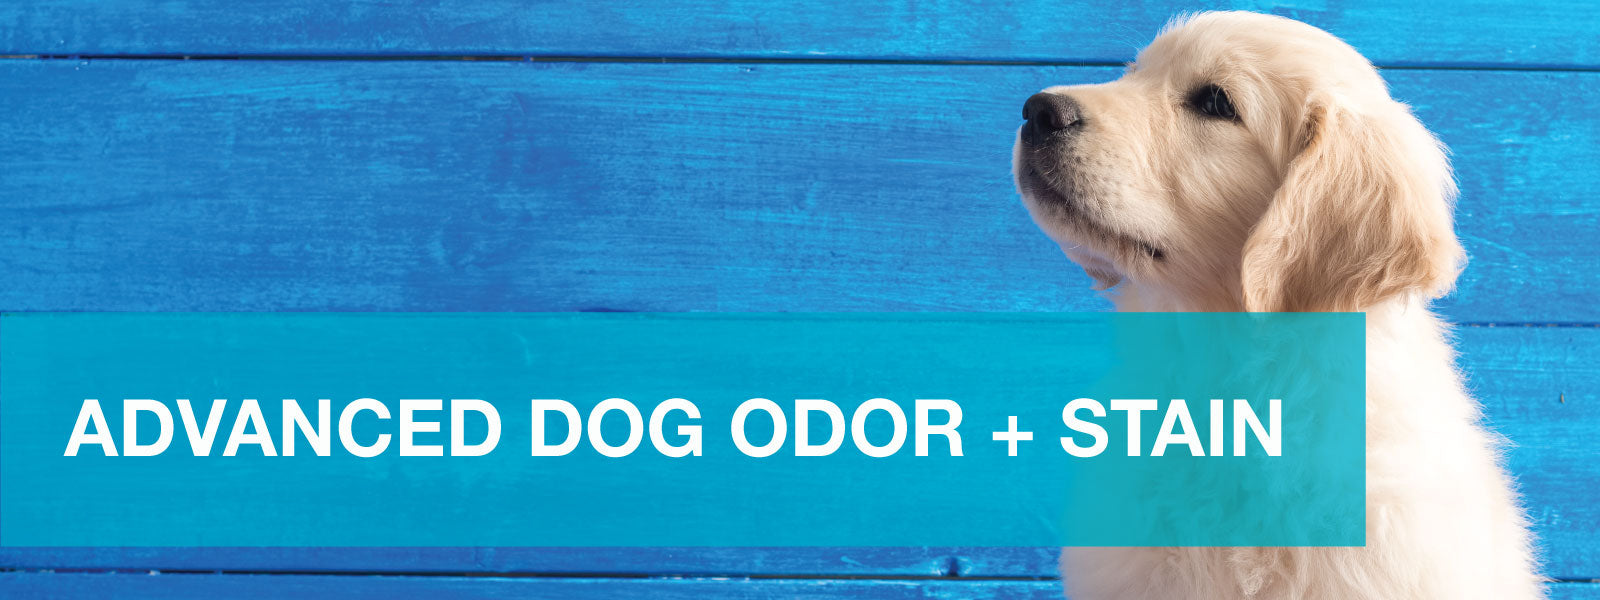 Advanced Dog Odor + Stain Remover works to remove residue old and new - Unique Pet Care